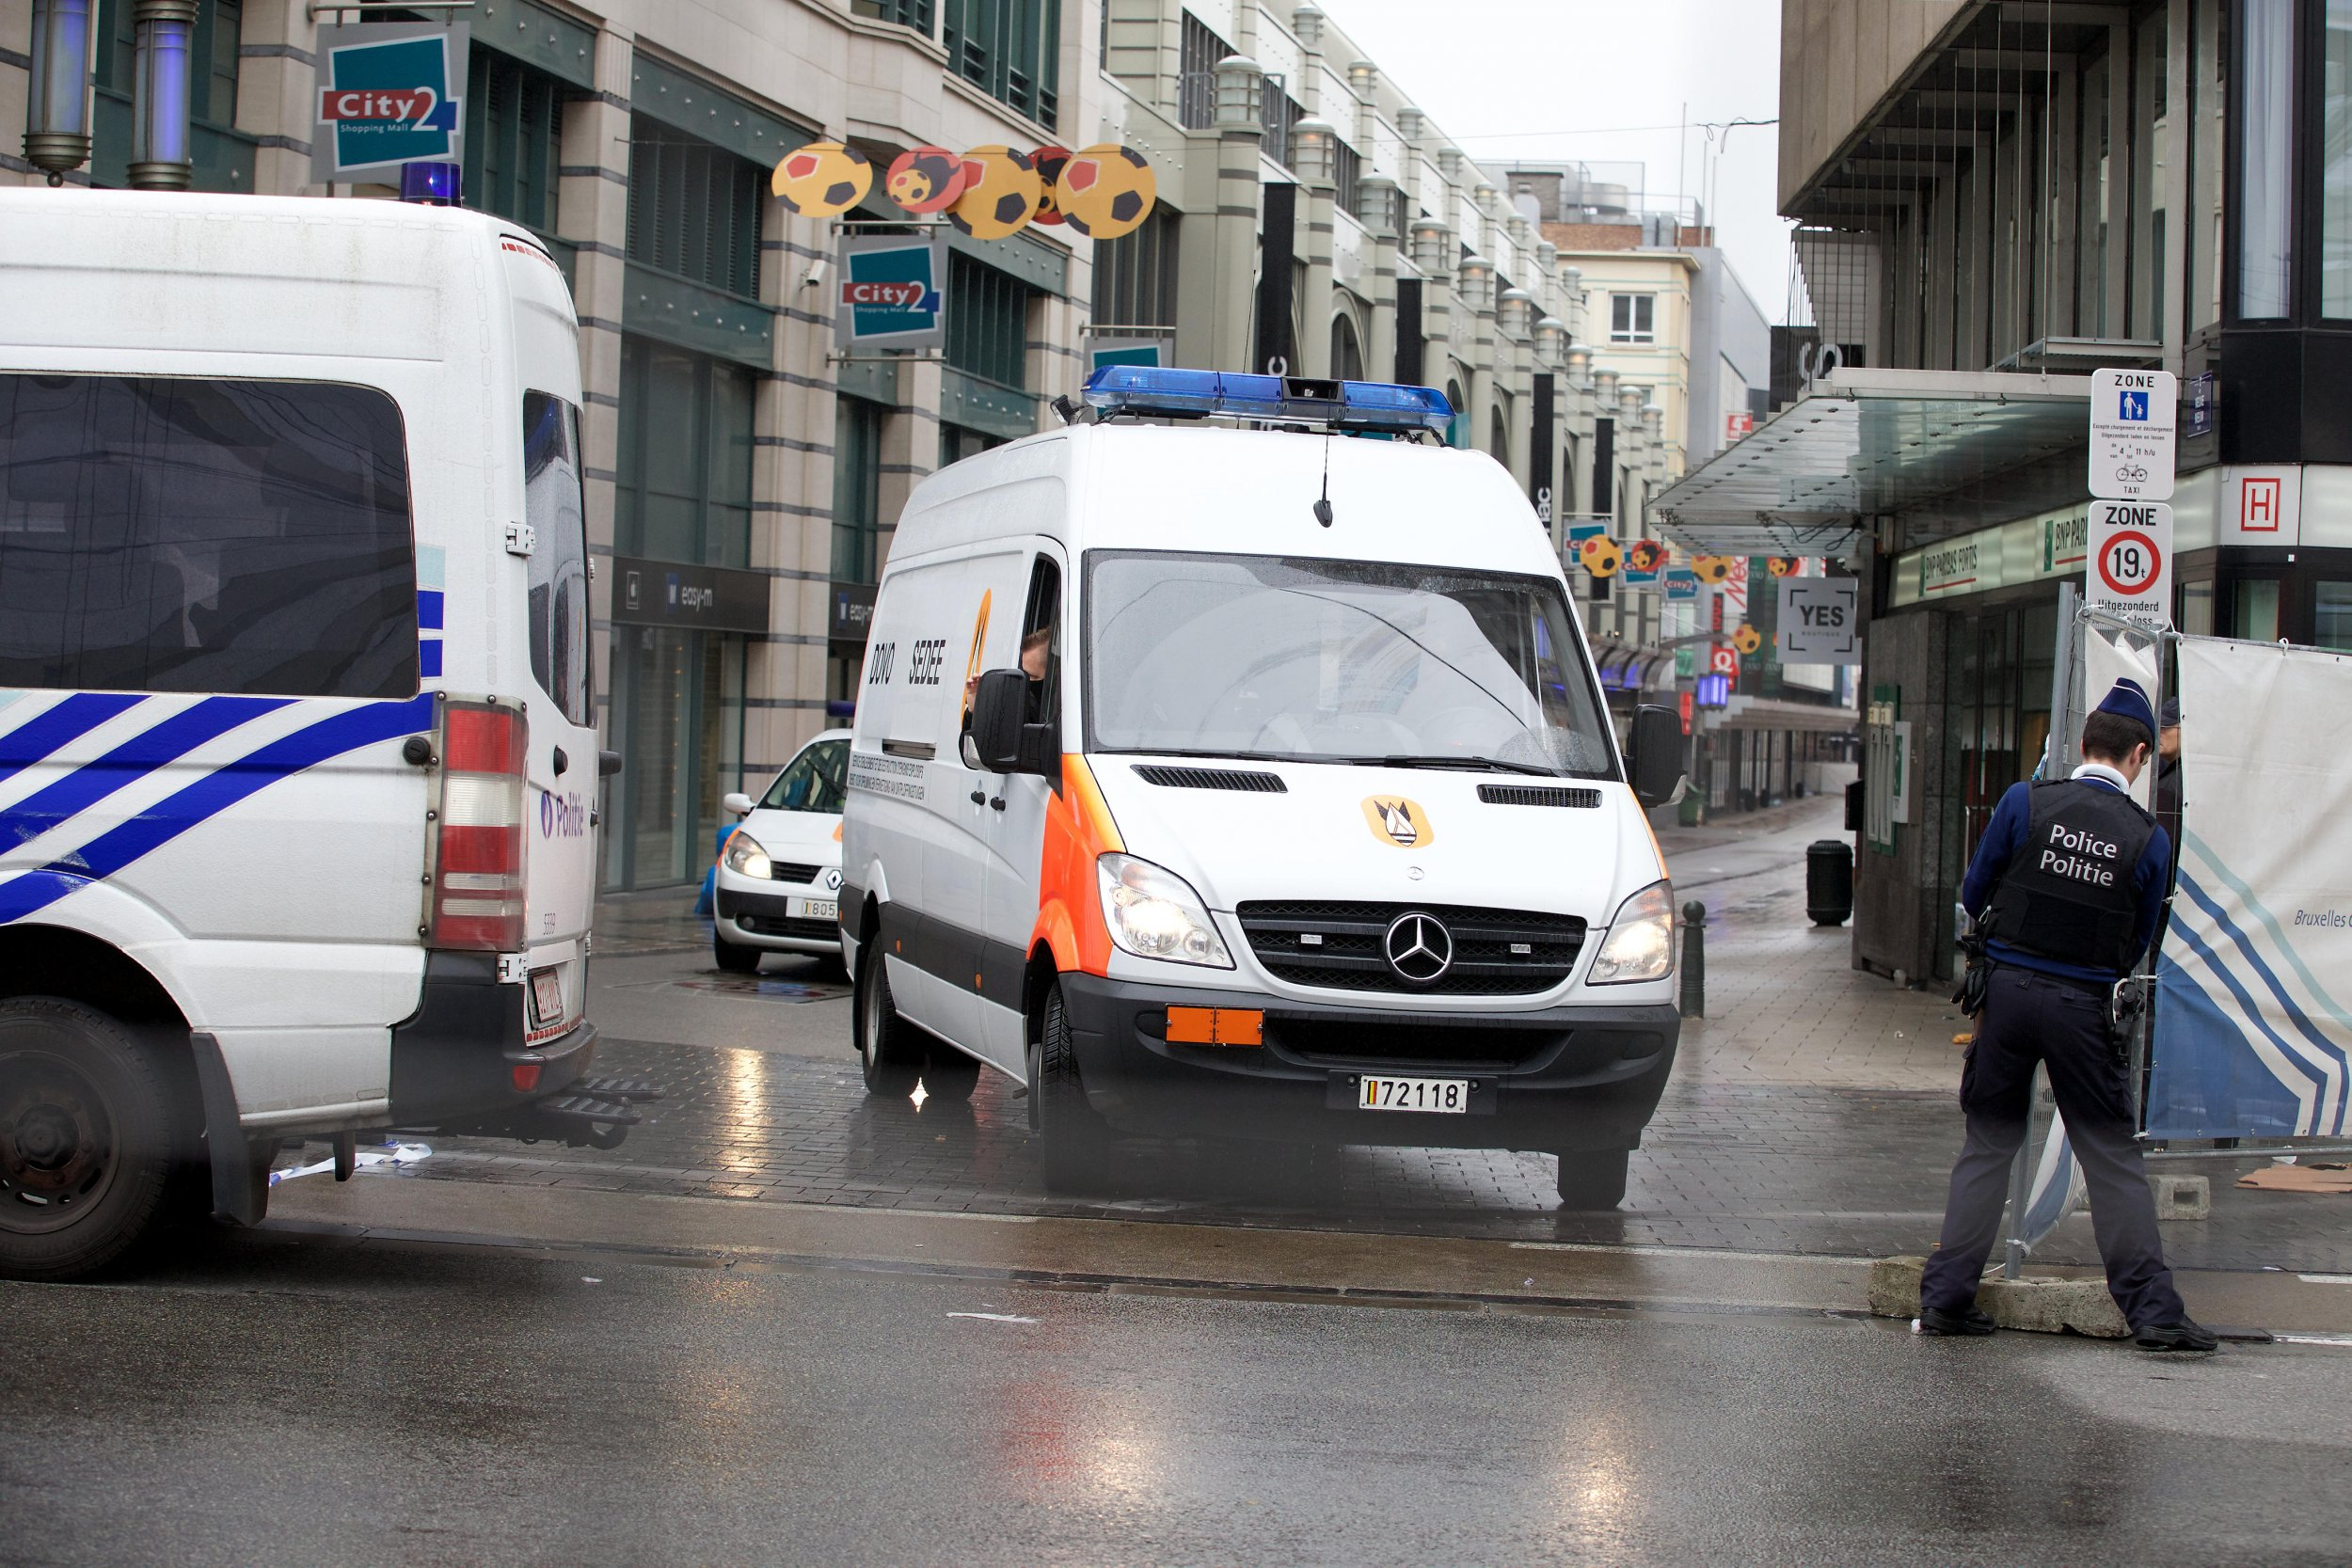 Brussels anti-extremism operation